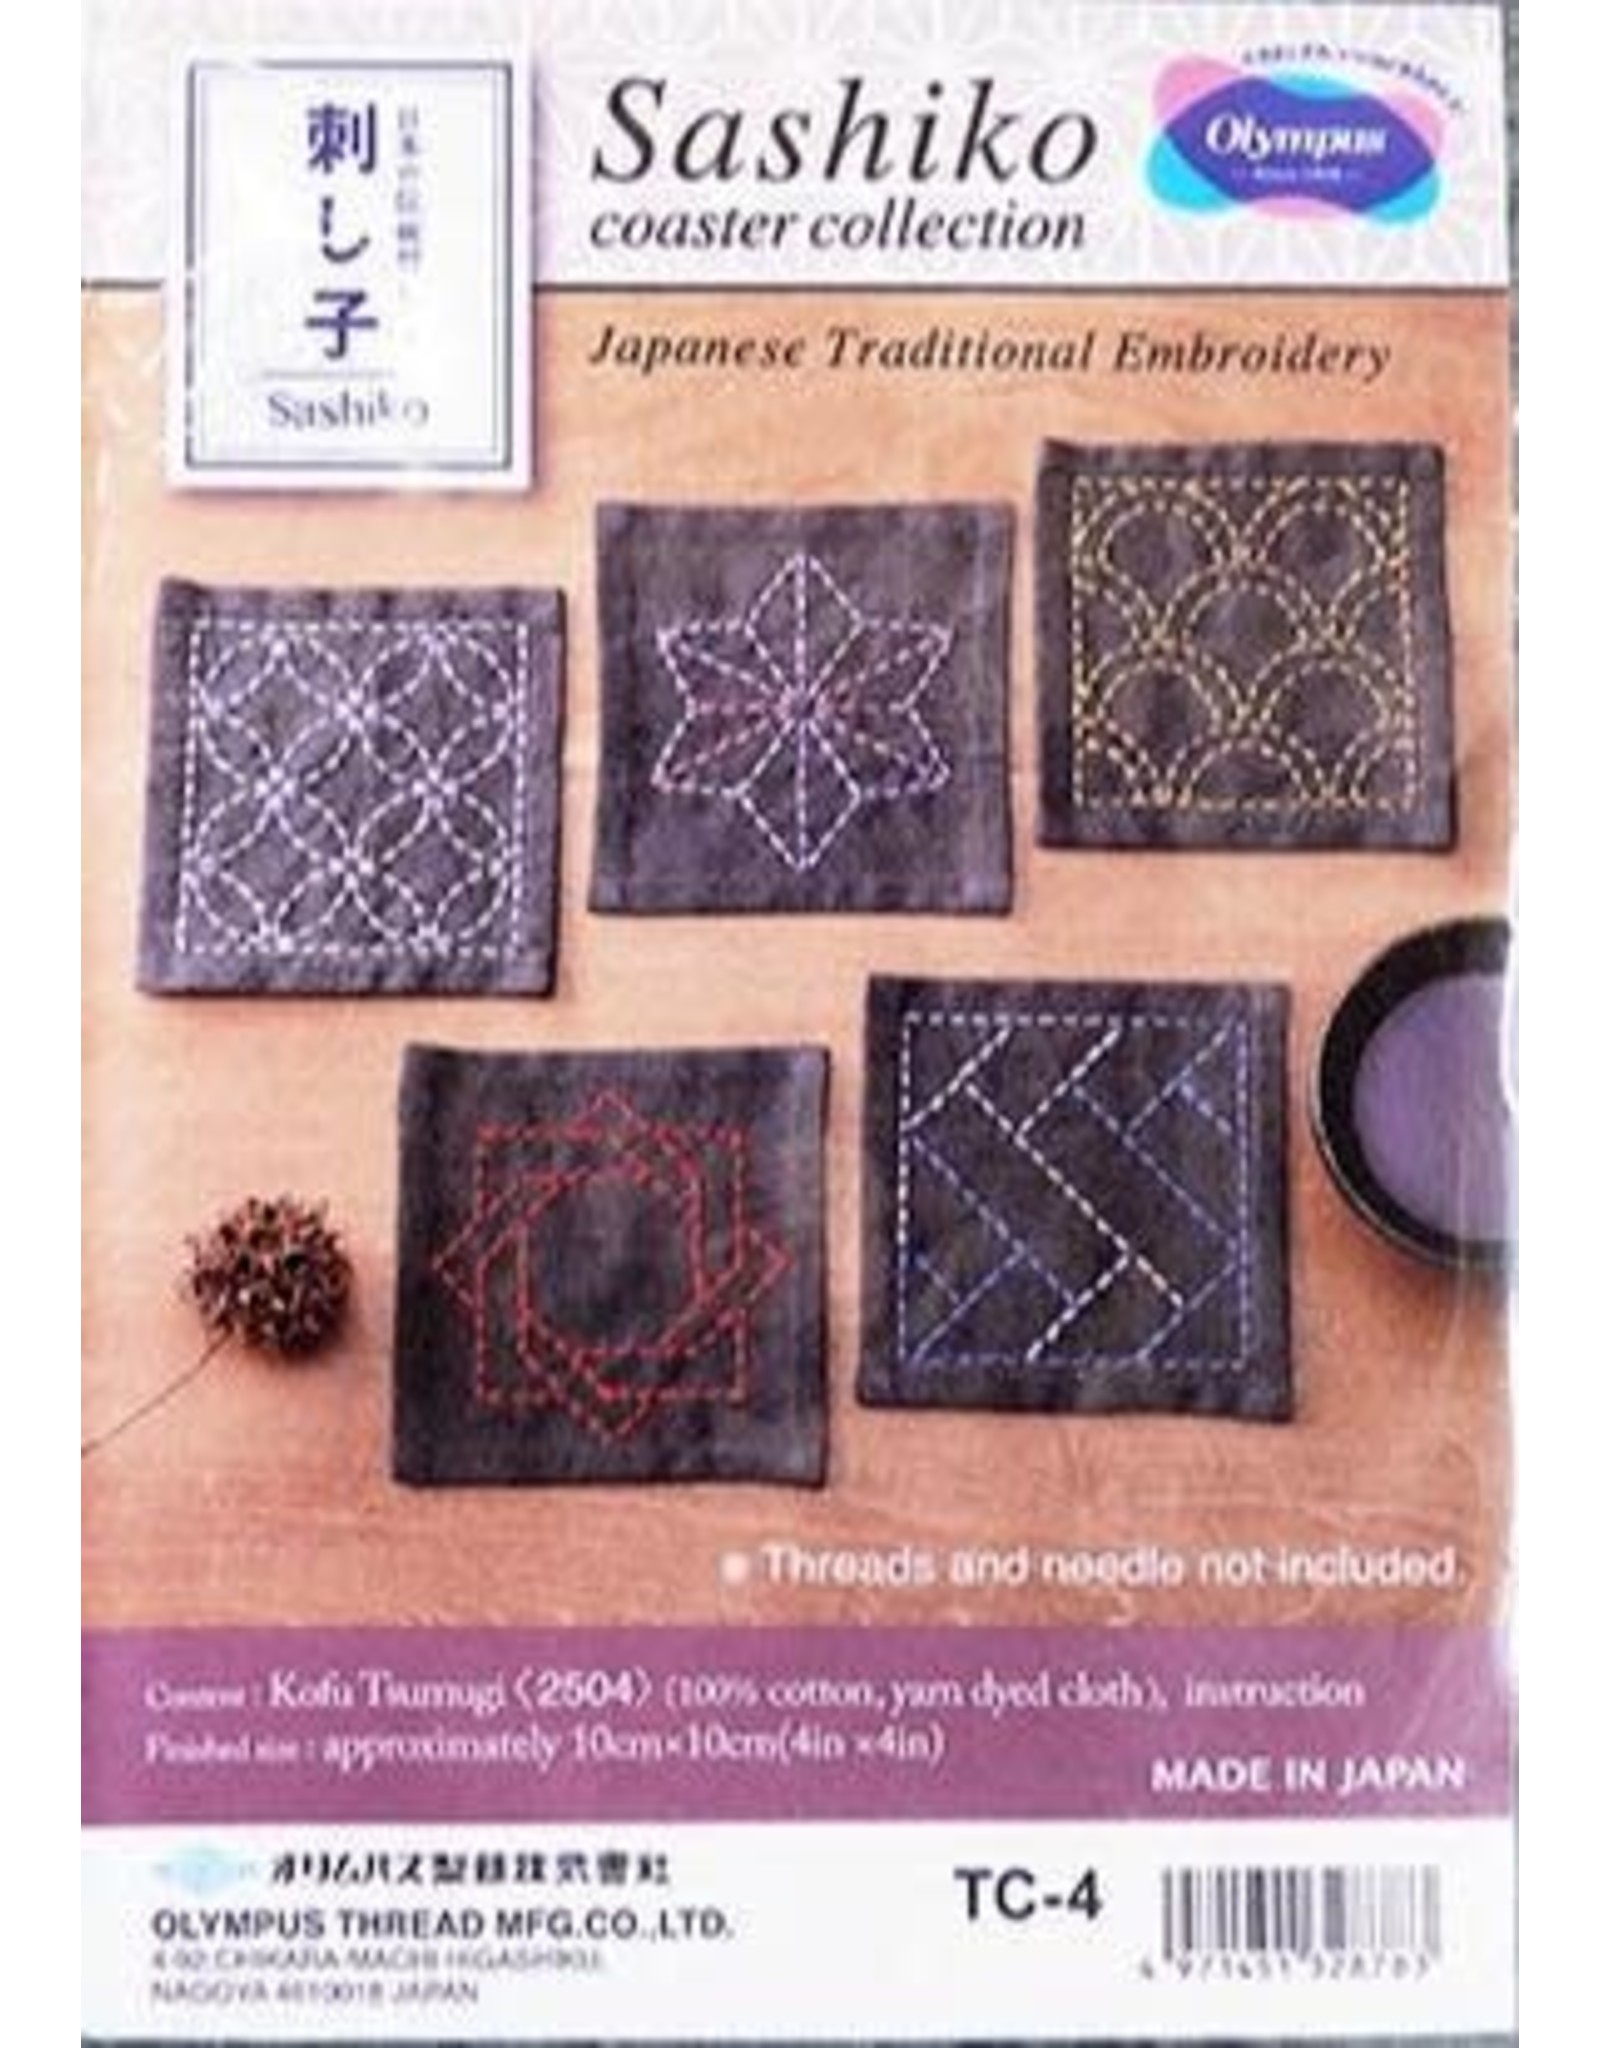 Japan Import ON ORDER-Sashiko Coaster Collection, Navy Blue dyed cloth made of 100% Cotton.